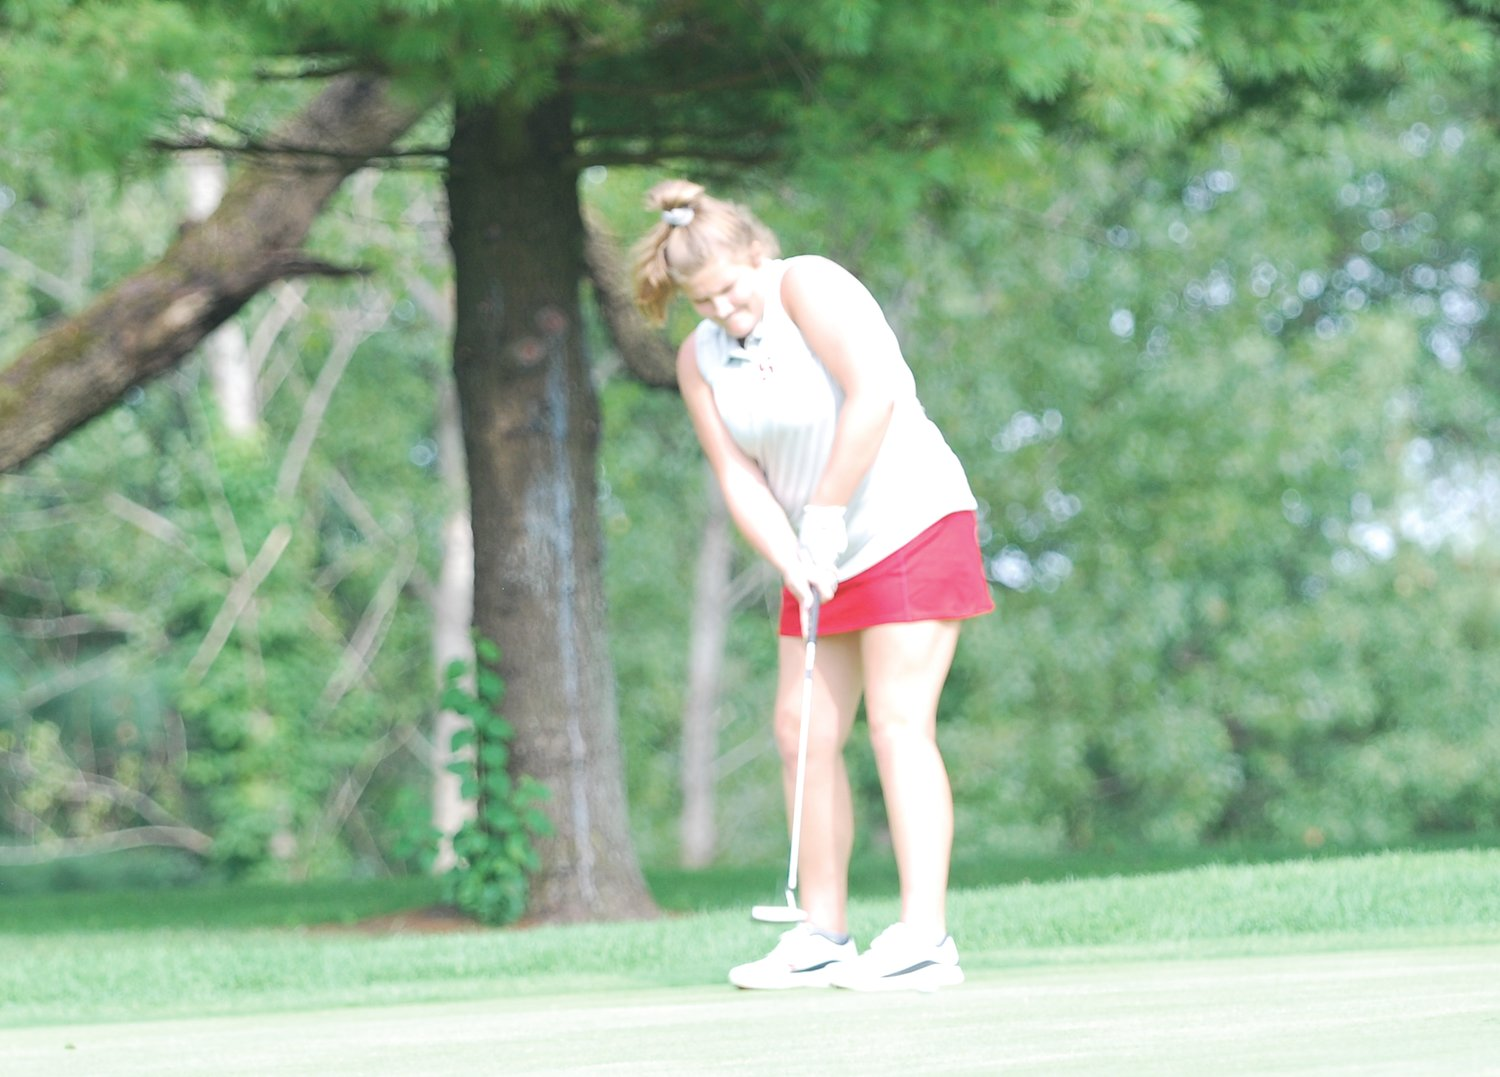 Southmont's Macie Shirk putts on the No. 17 par 3 at Harrison Hills Golf Course Monday afternoon during the Seeger Invitational. Shirk shot a personal best 91 to lead the Mounties.